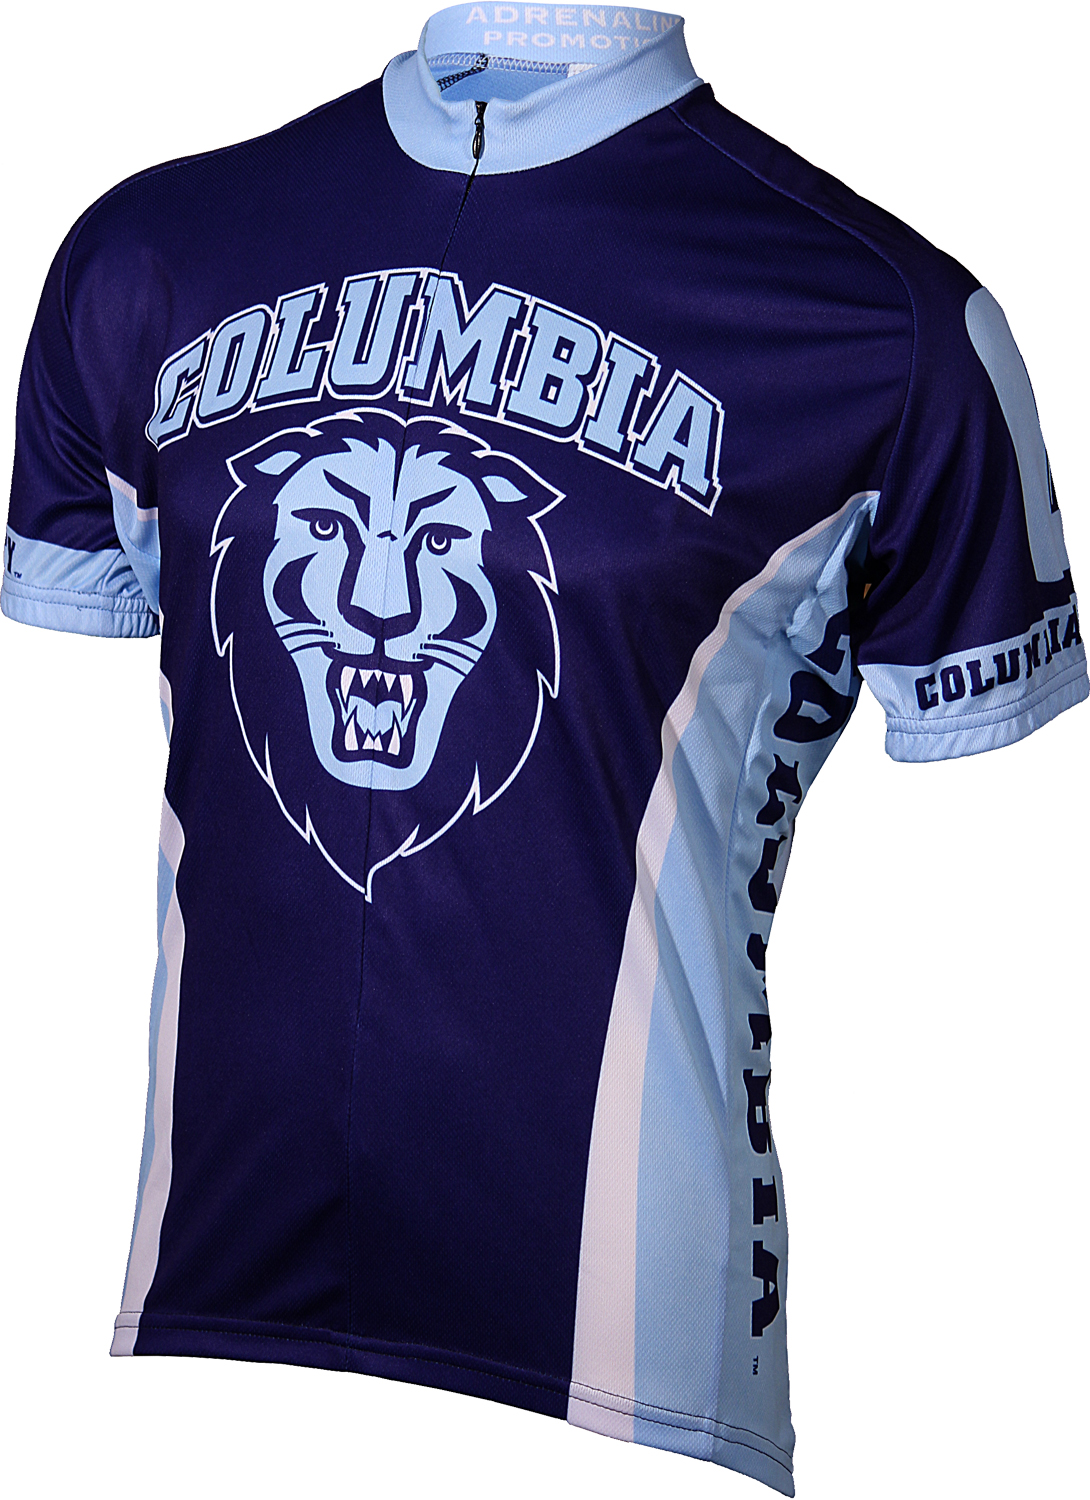 Columbia University Cycling Jersey